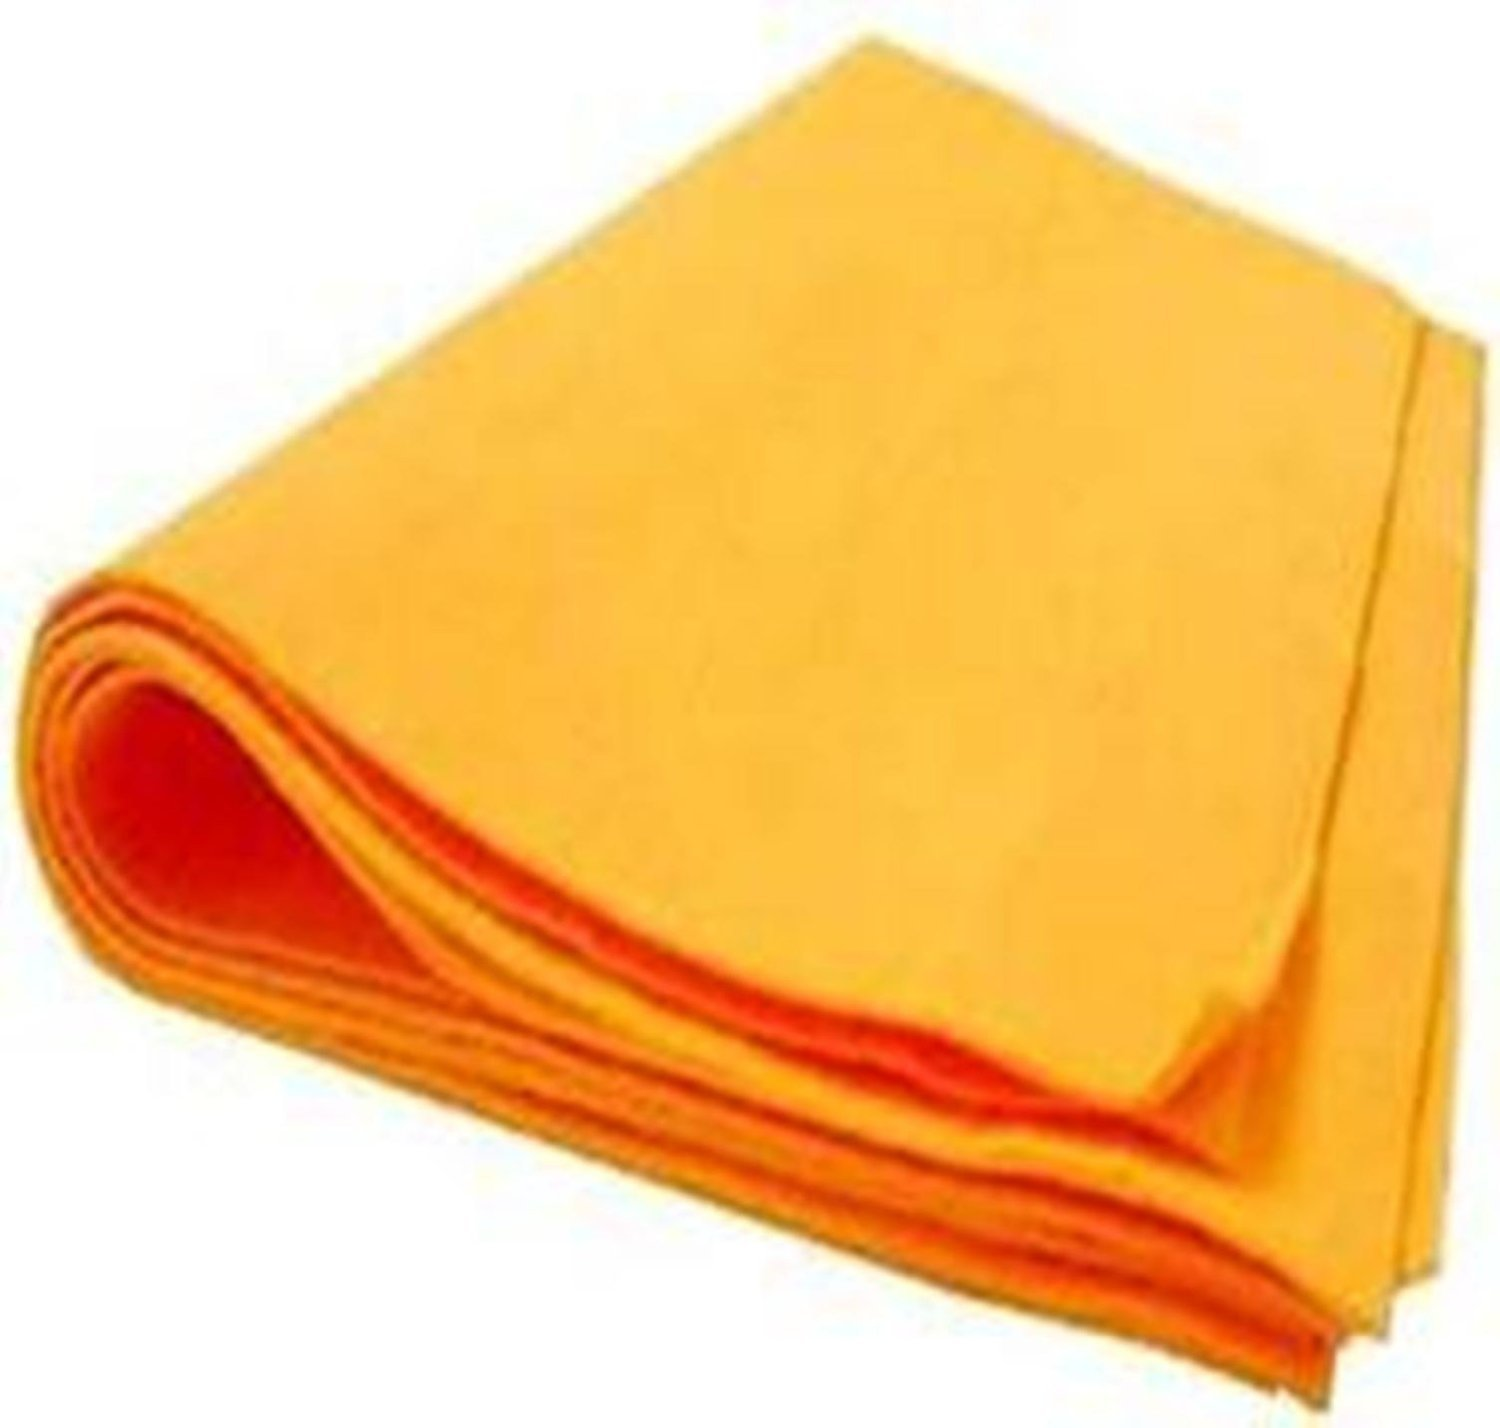 The Newest Original German Shammy - Commercial Grade Drying Chamois (100, Orange (Large)) by The Newest Original German Shammy